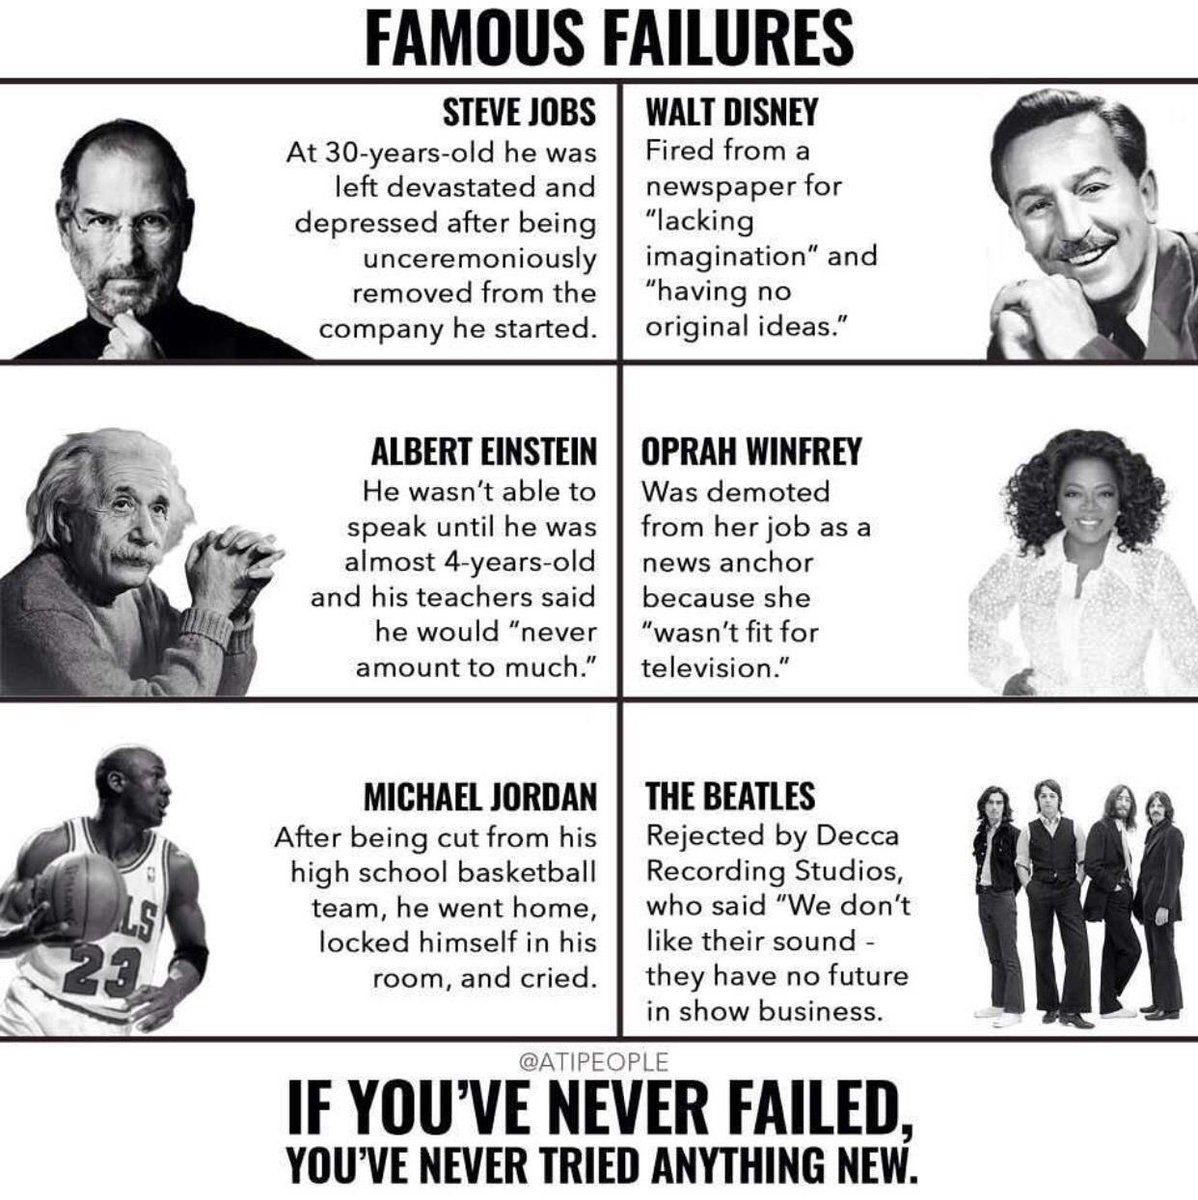 Iamwire On Twitter If You Ve Never Failed You Ve Never